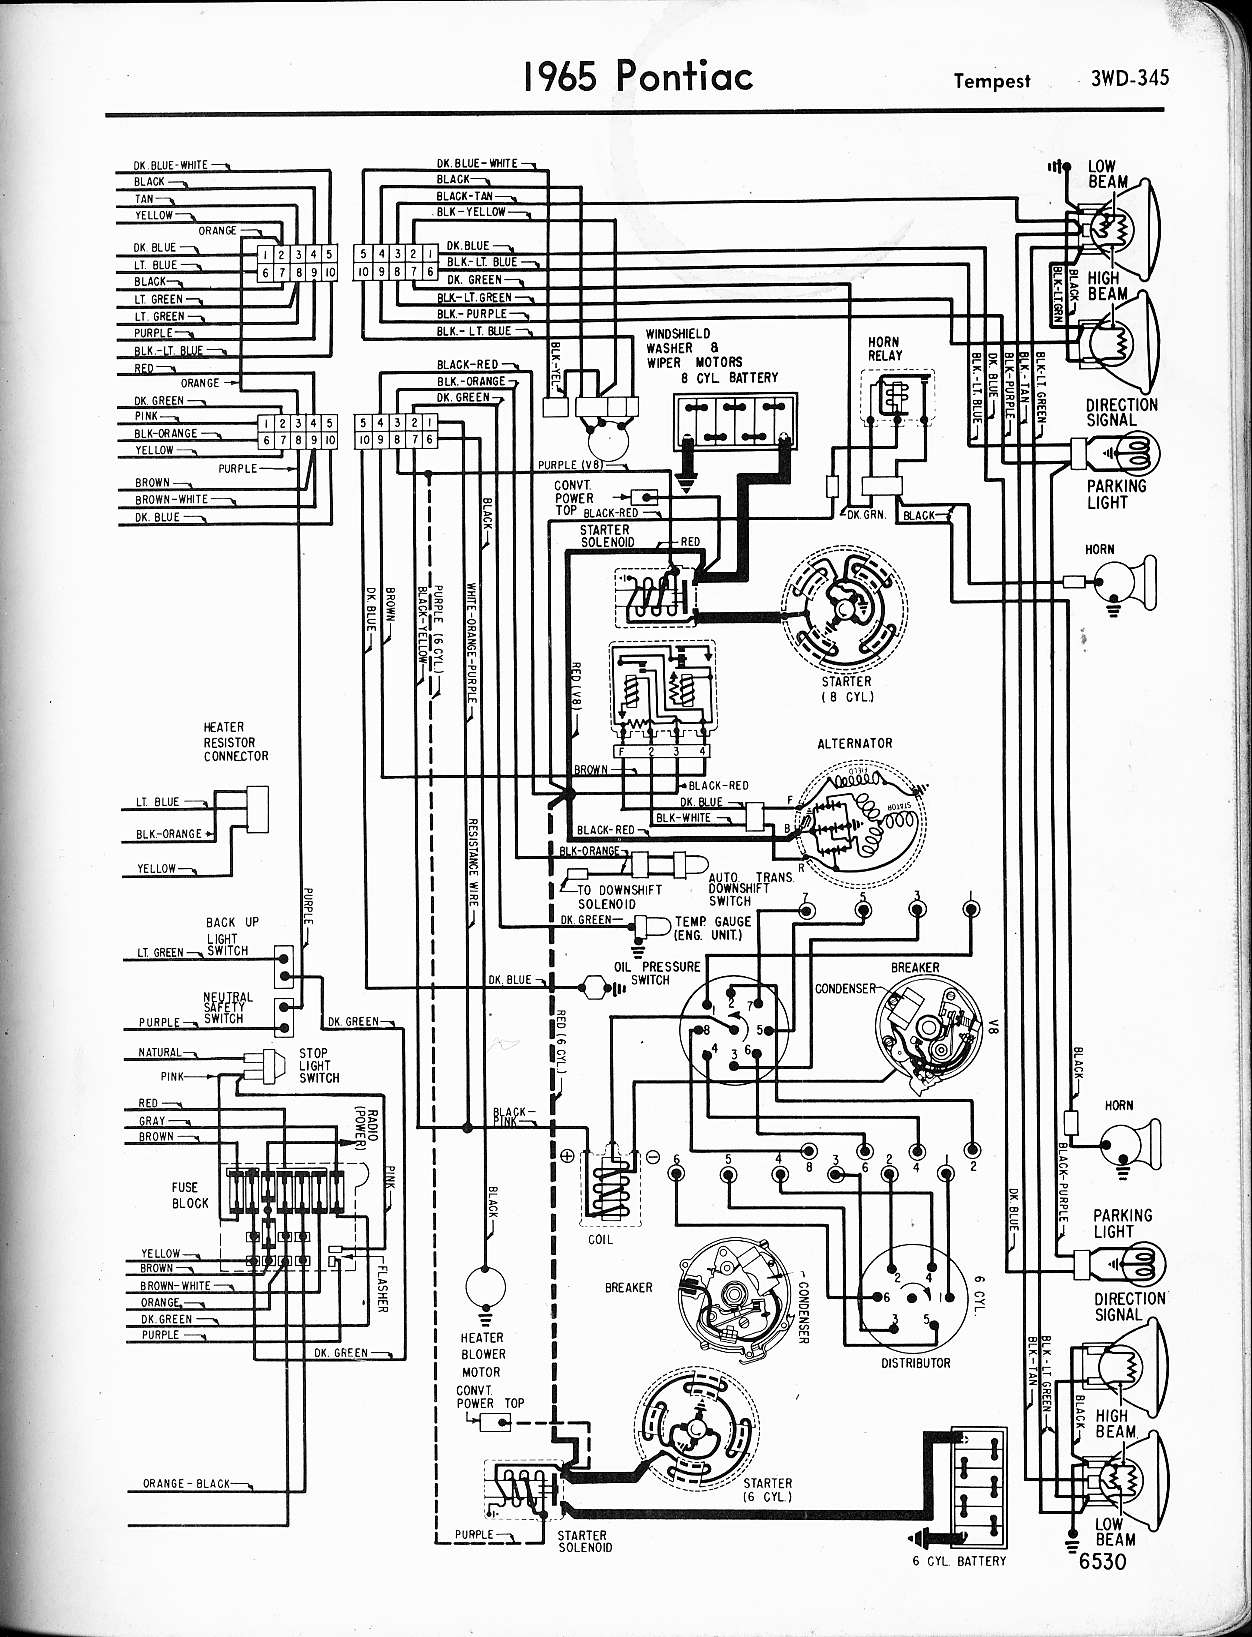 1971 gto wiring diagram simple wiring diagram rh david huggett co uk pontiac  vibe wiring diagram